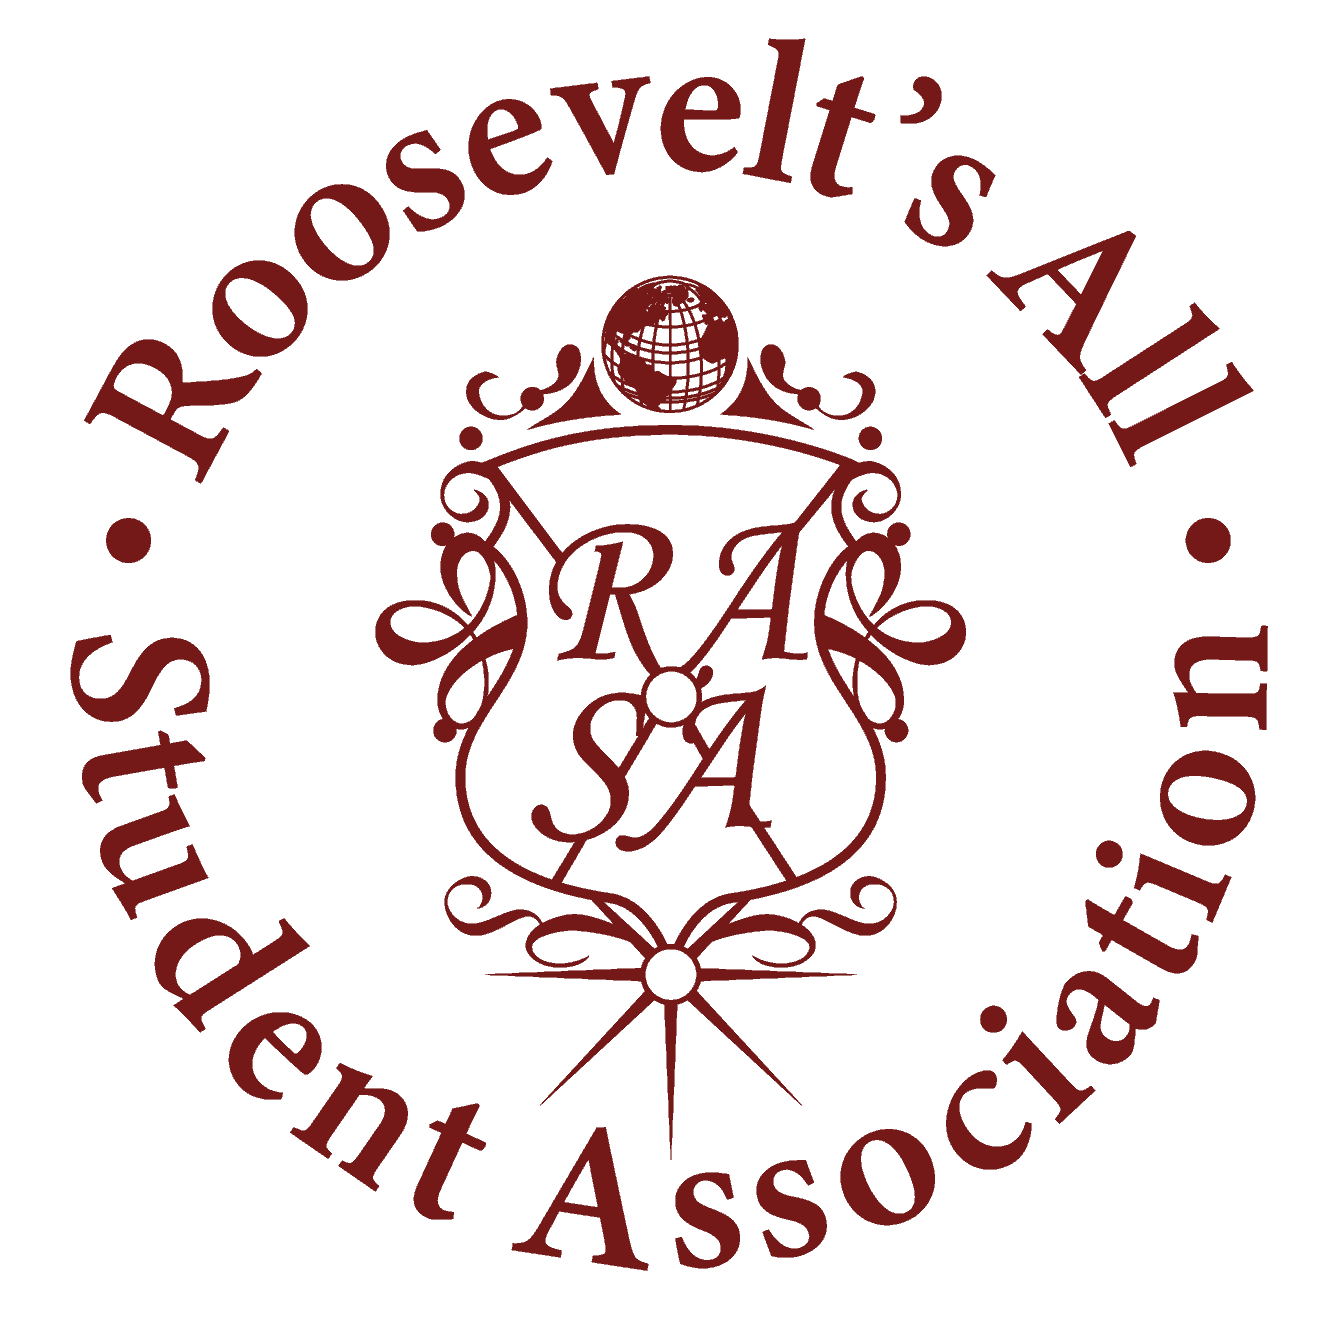 Roosevelt's All Student Association (RASA)